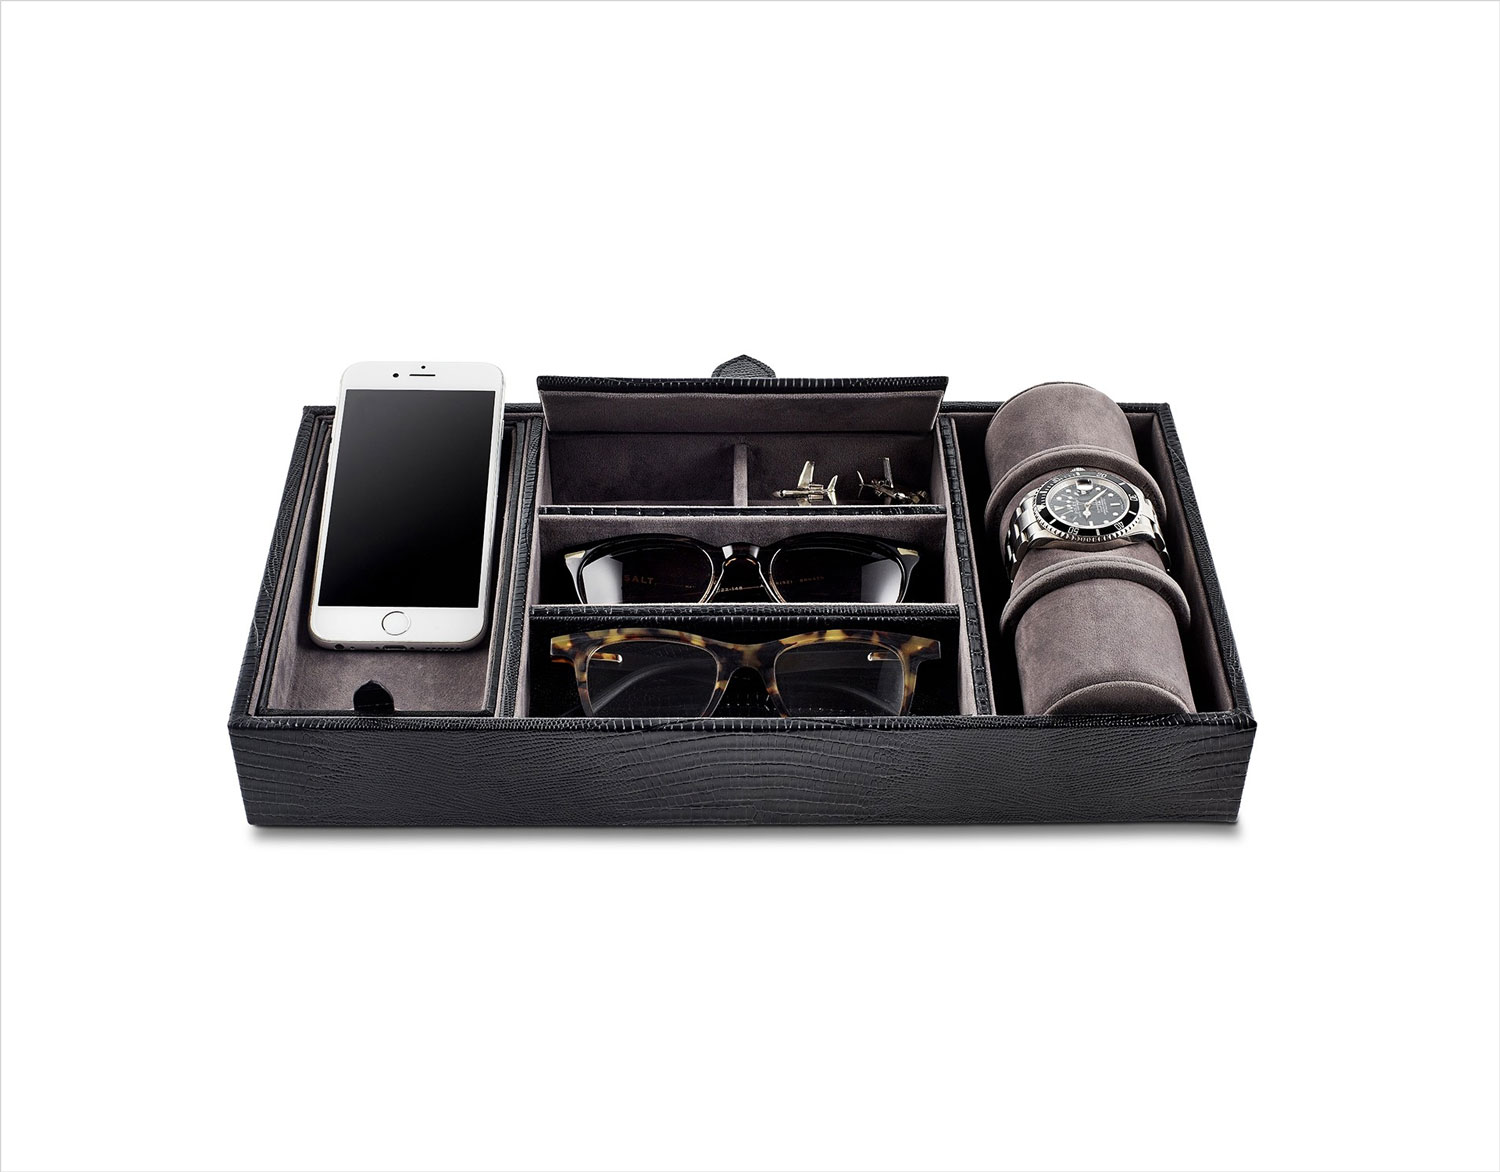 Black leather tray for men accessories Gearys holiday gift guide